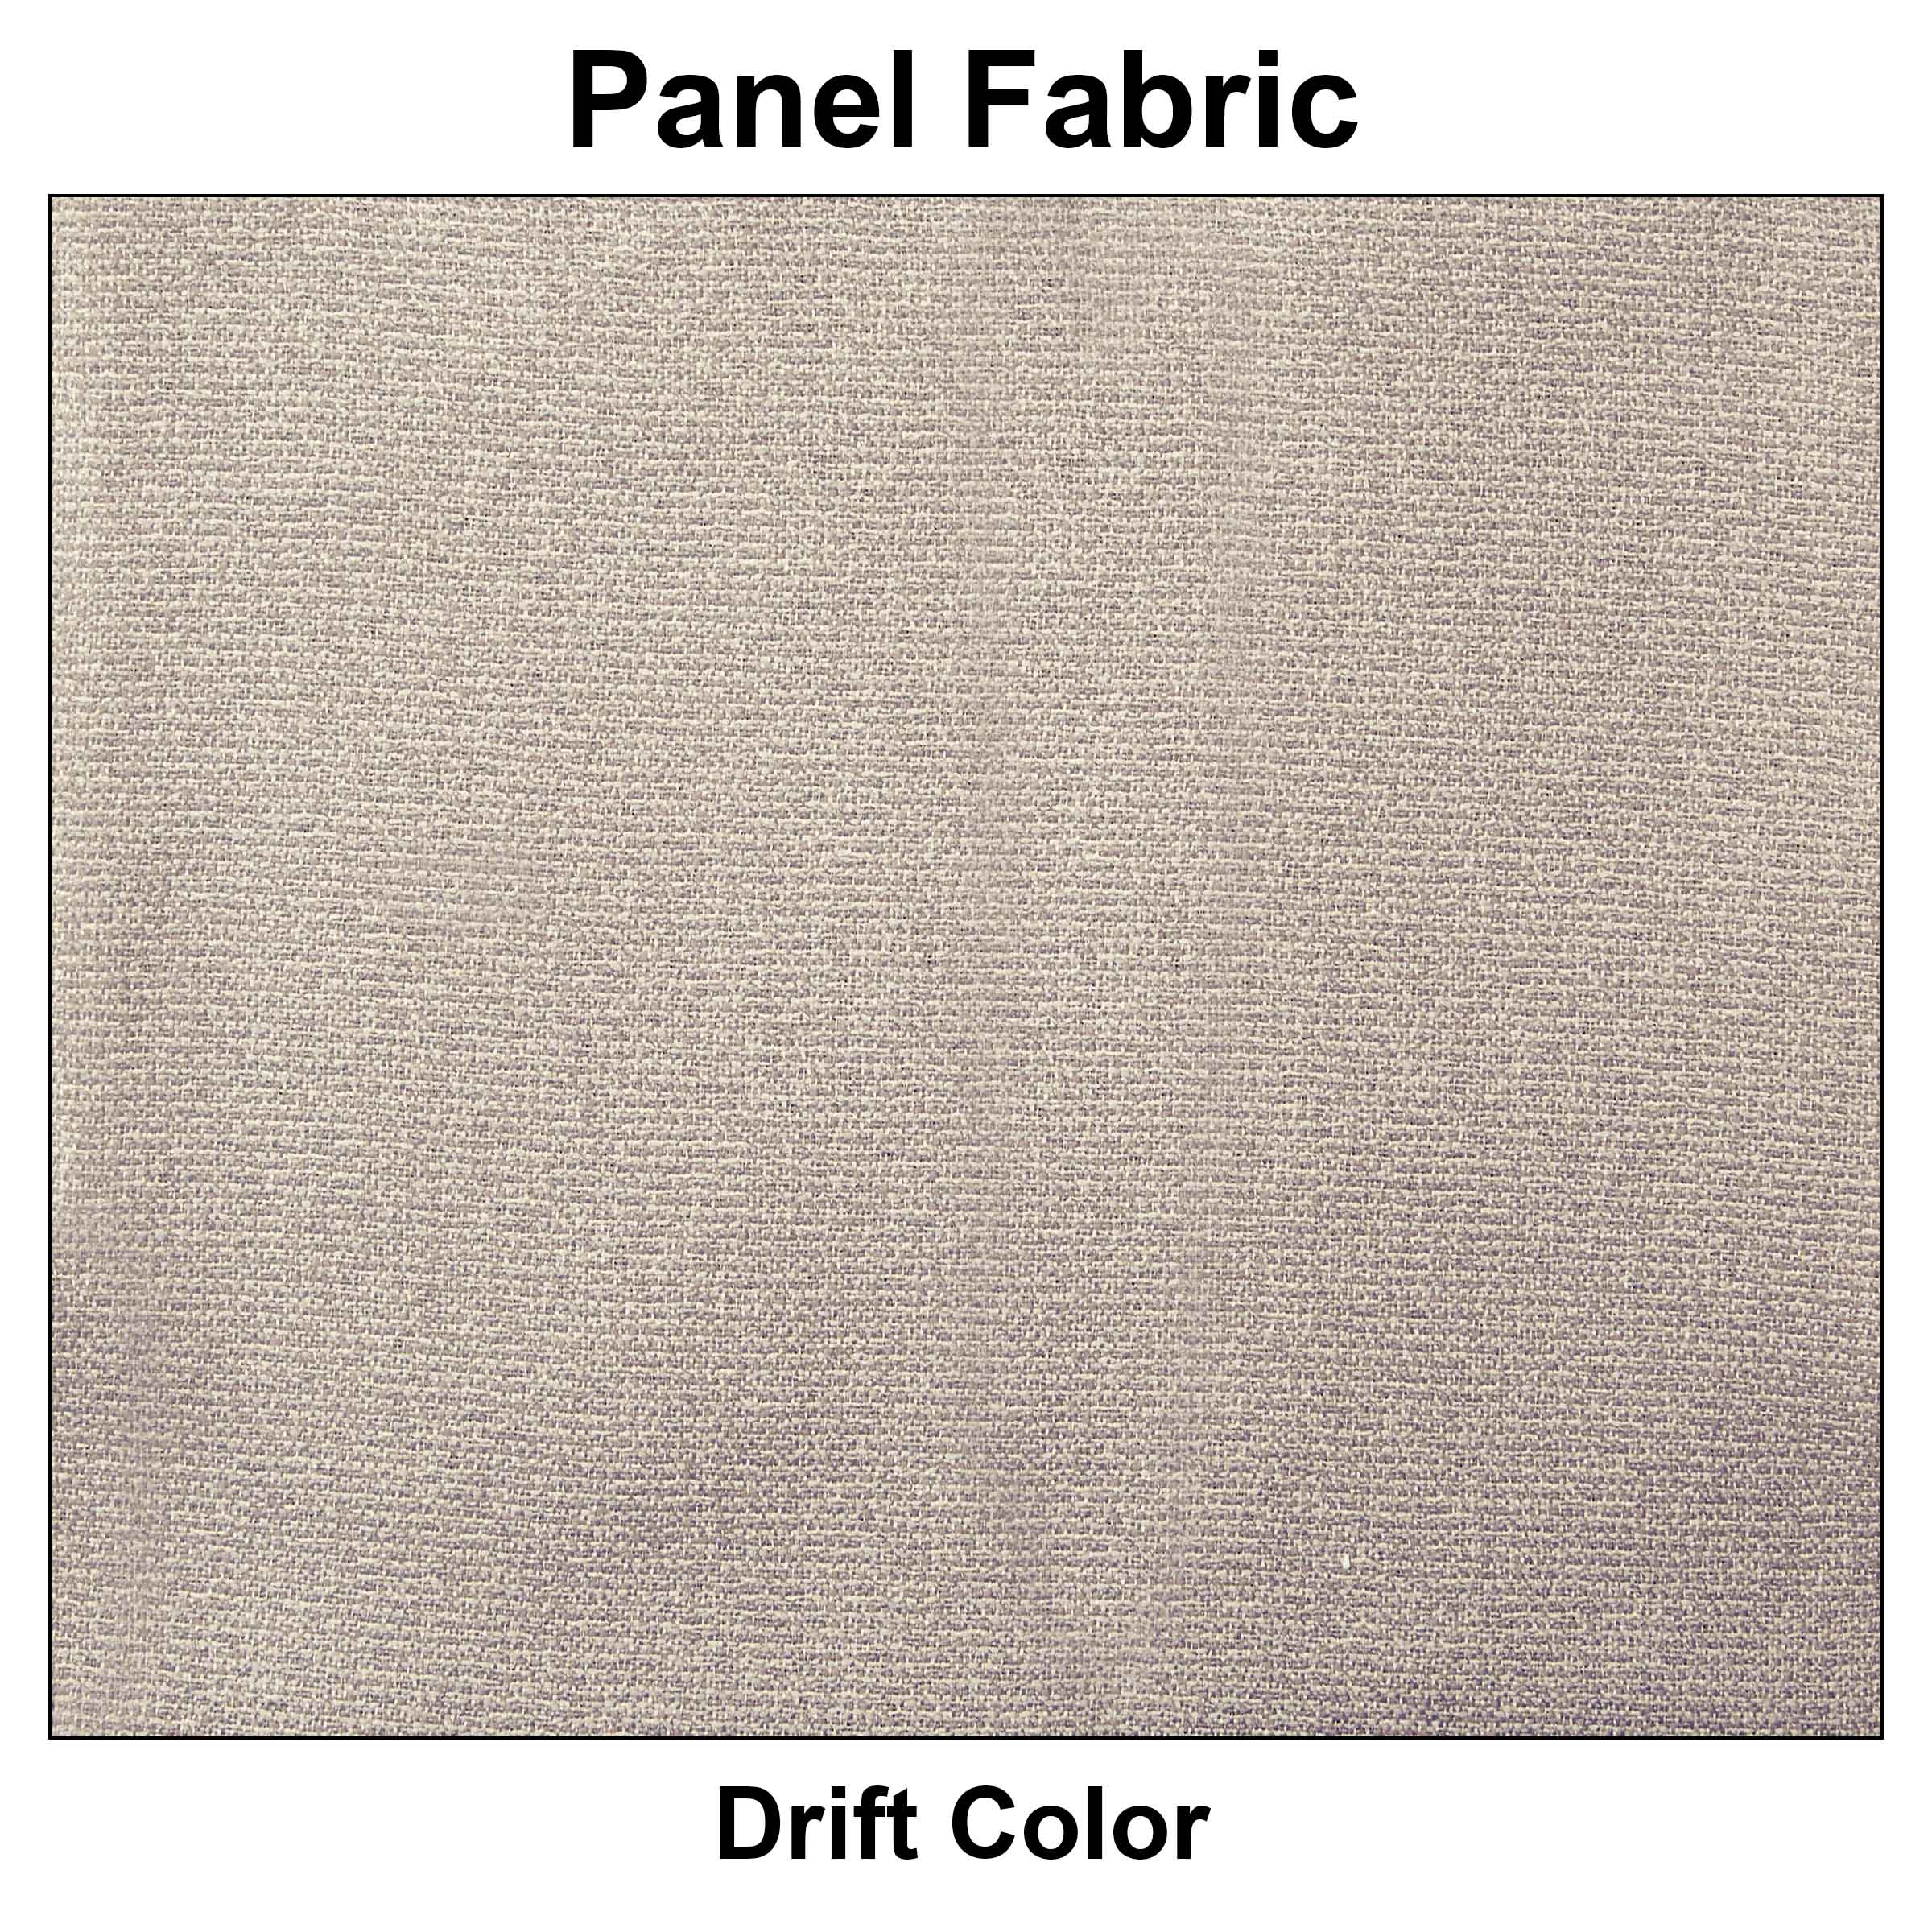 Workstation furniture fabric